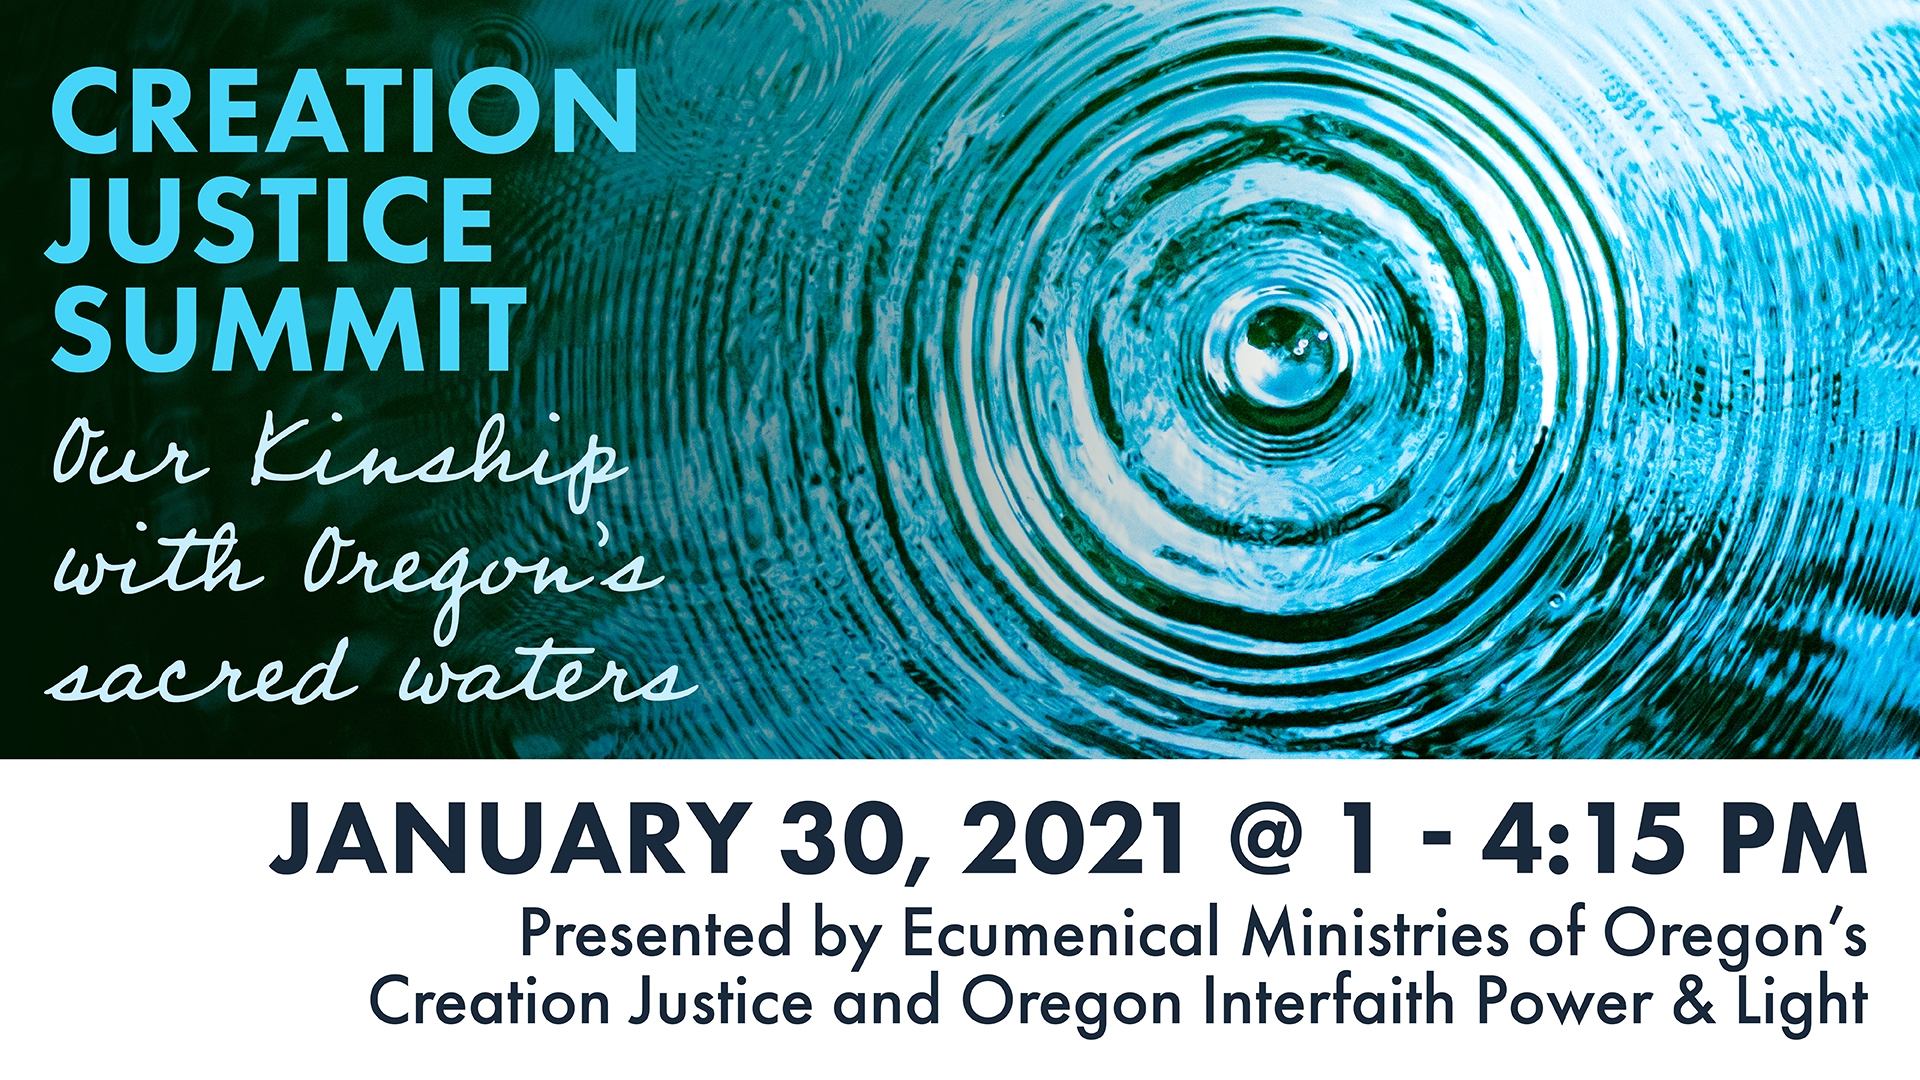 Creation Justice Summit: Our kinship with Oregon's sacred waters